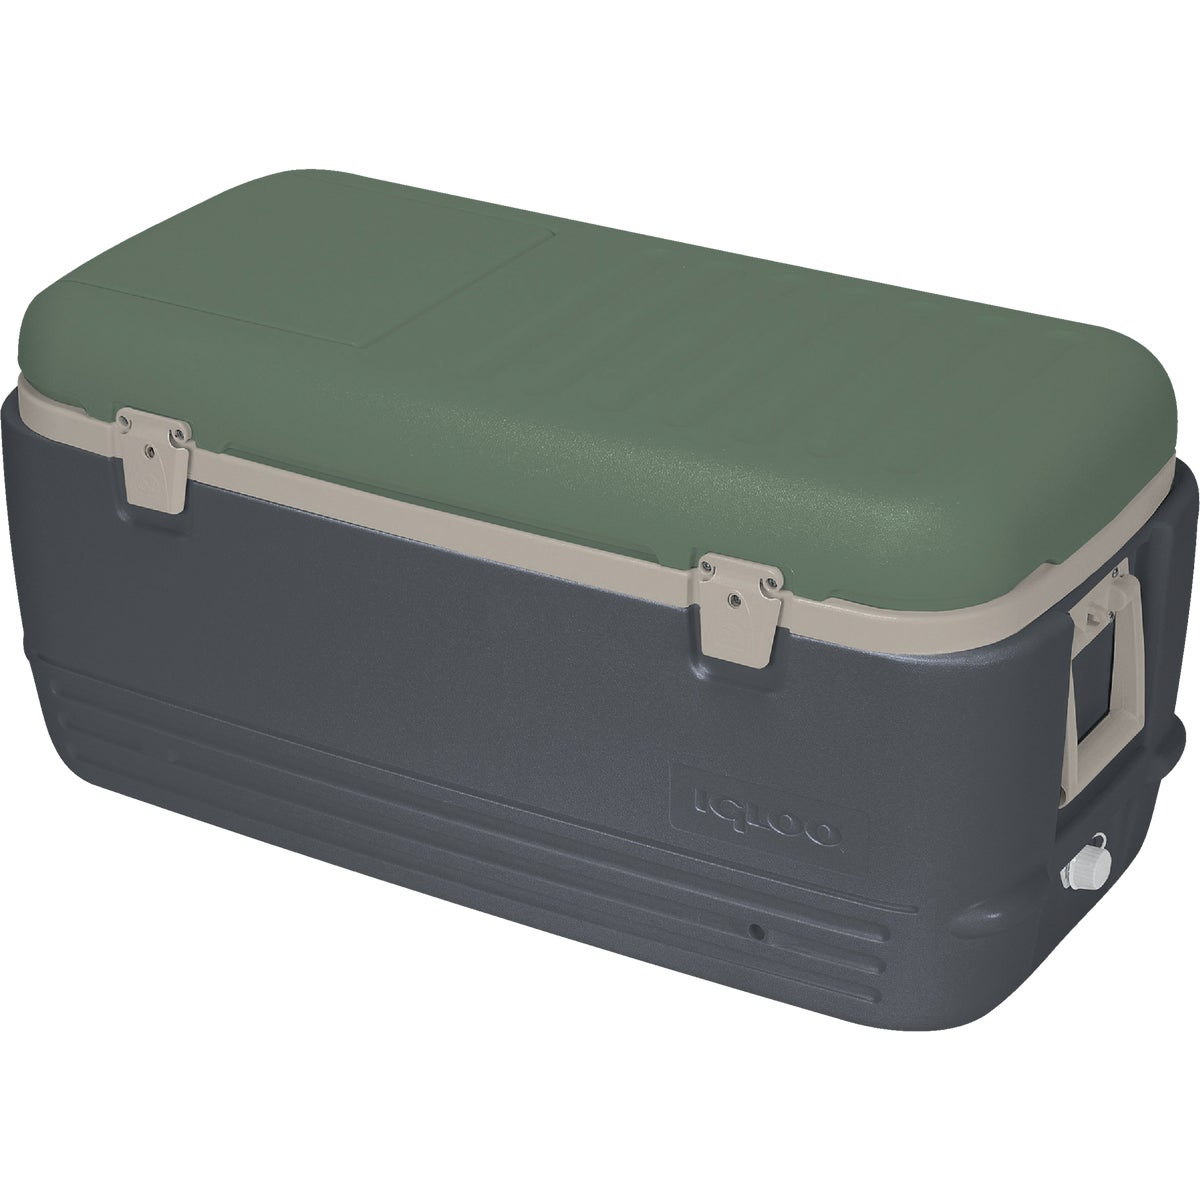 165QT MAX COLD COOLER - 44419 by Igloo Corp